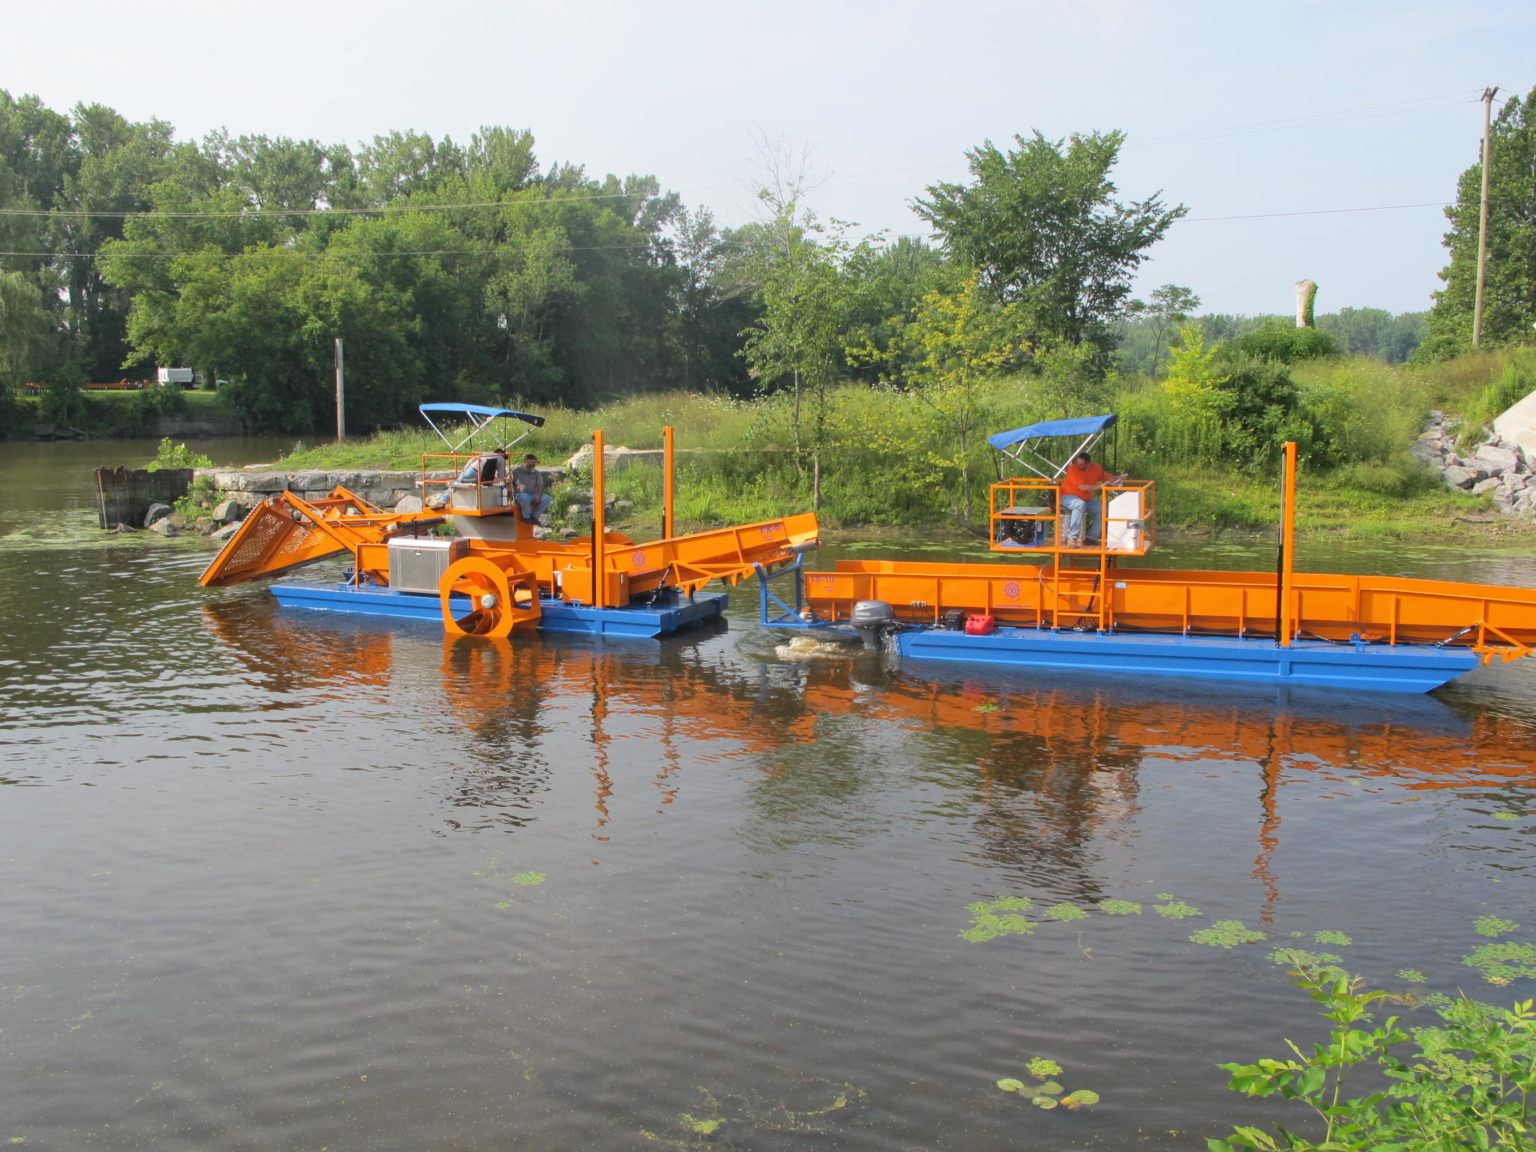 Alphaboats TS10 Transport Barge and Alphaboats FX6 Aquatic Weed Harvester